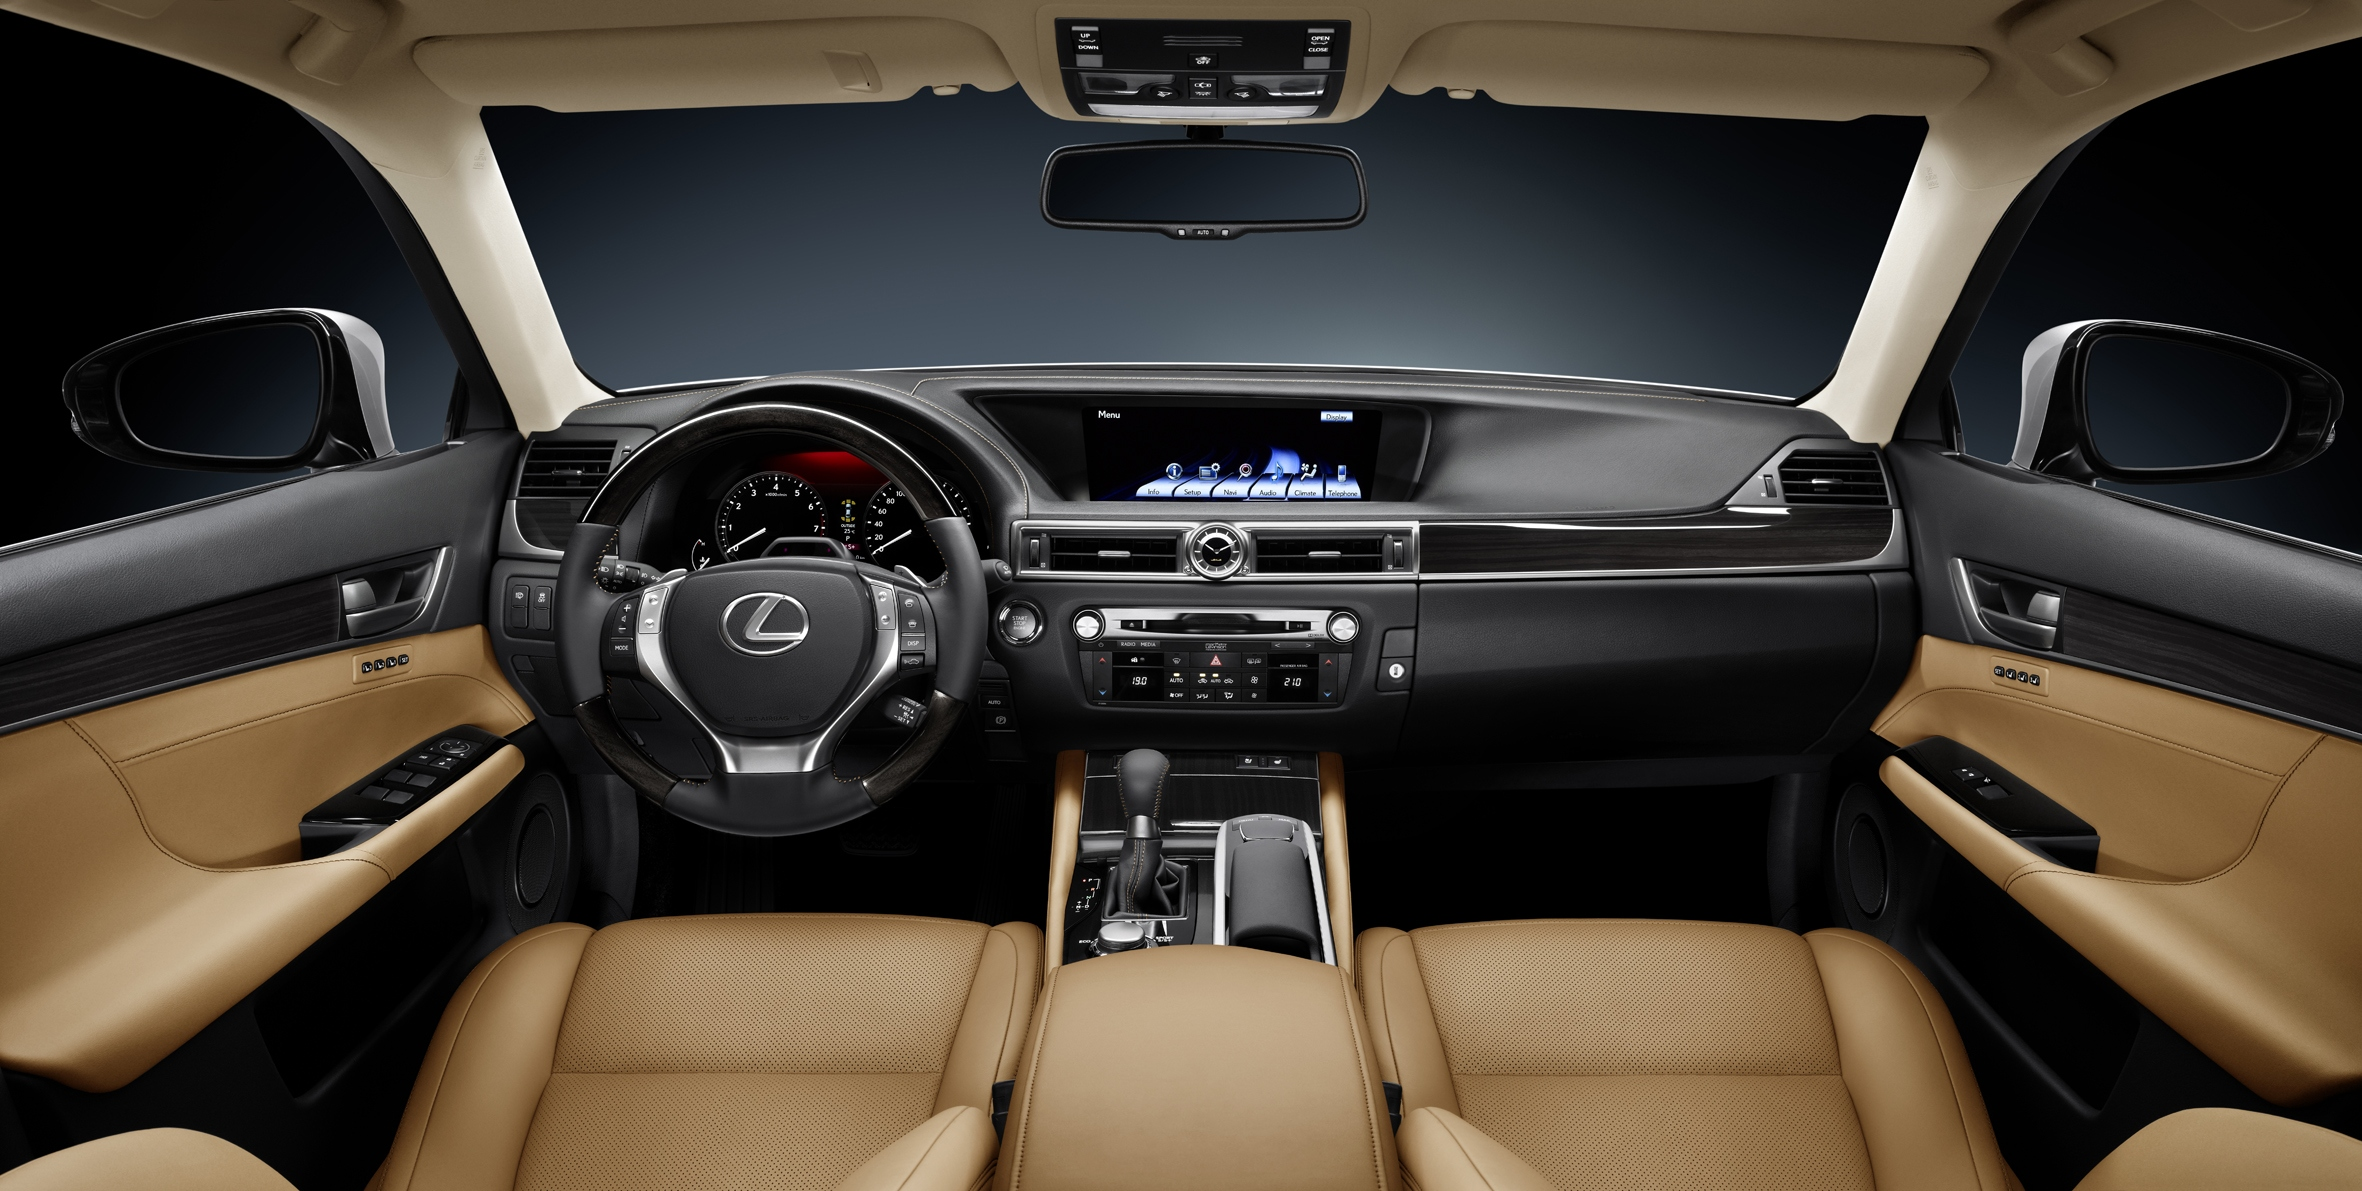 Lexus GS 450h Luxury hybrid Auto